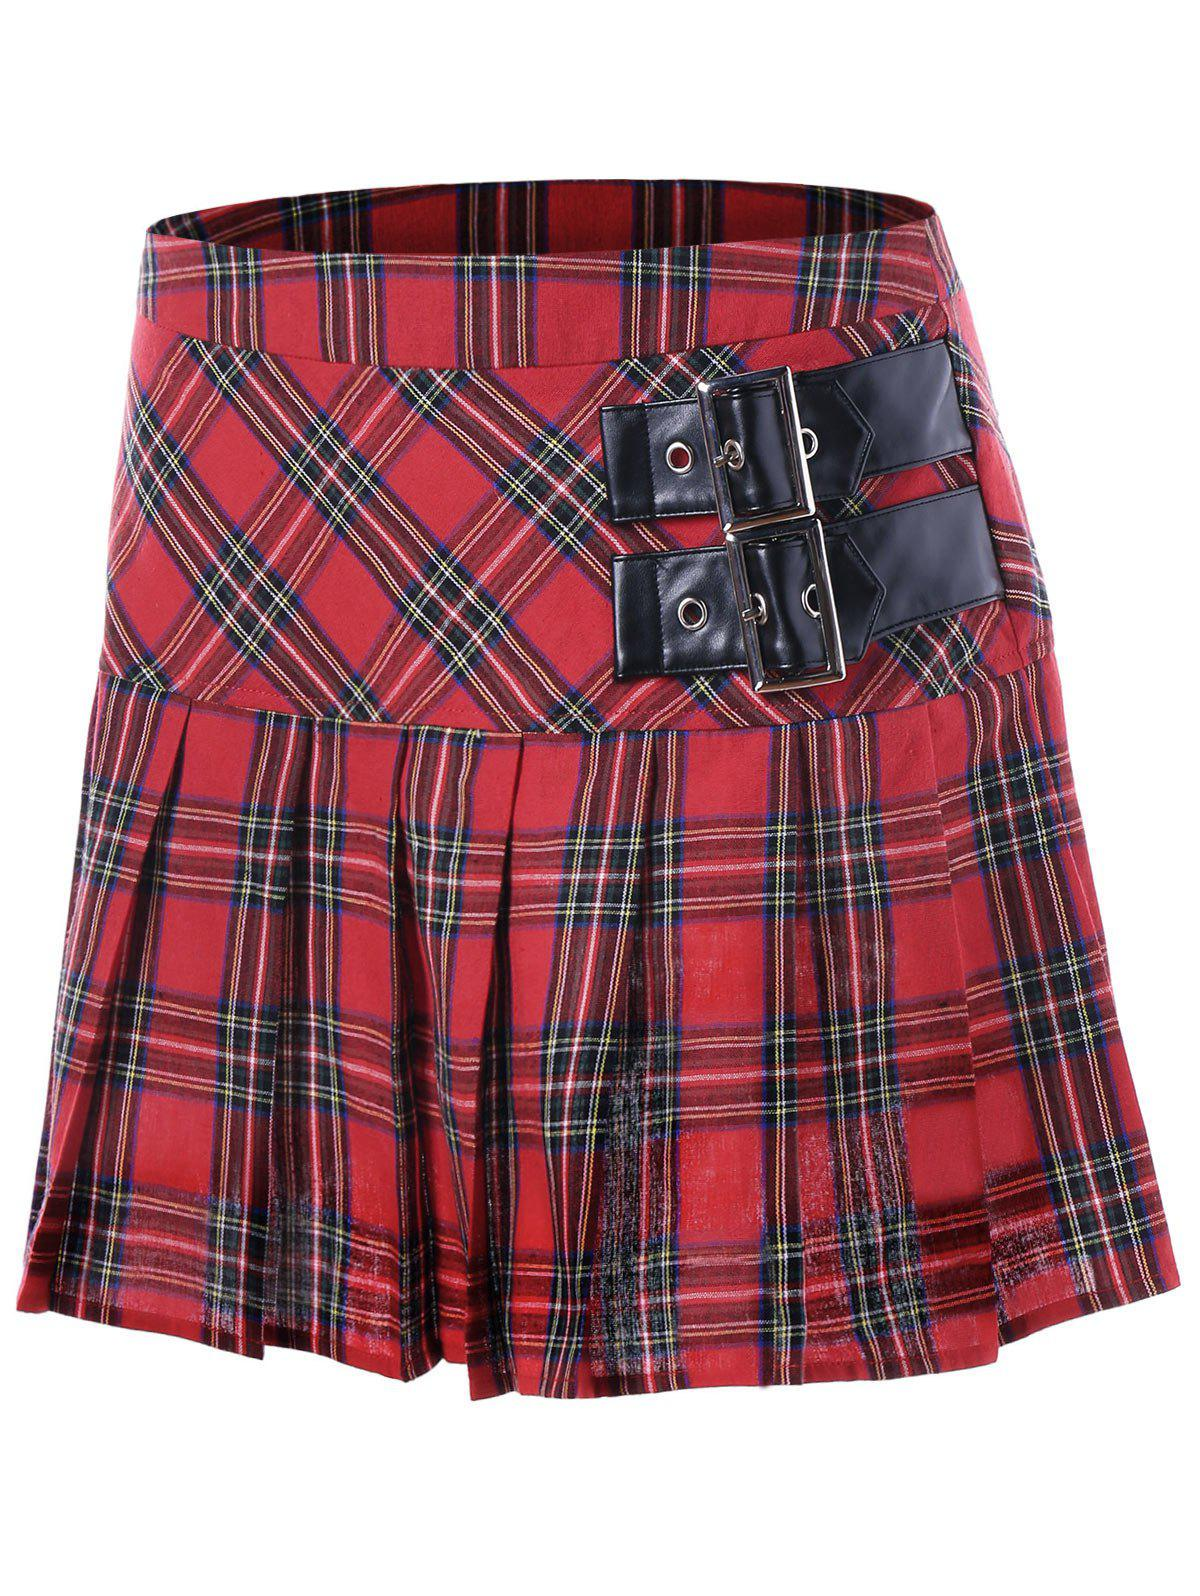 Buckles Pleated A-line Plaid SkirtWOMEN<br><br>Size: M; Color: RED; Material: Cotton; Length: Mini; Silhouette: A-Line; Pattern Type: Plaid; Season: Fall,Spring; Weight: 0.1840kg; Package Contents: 1 x Skirt;